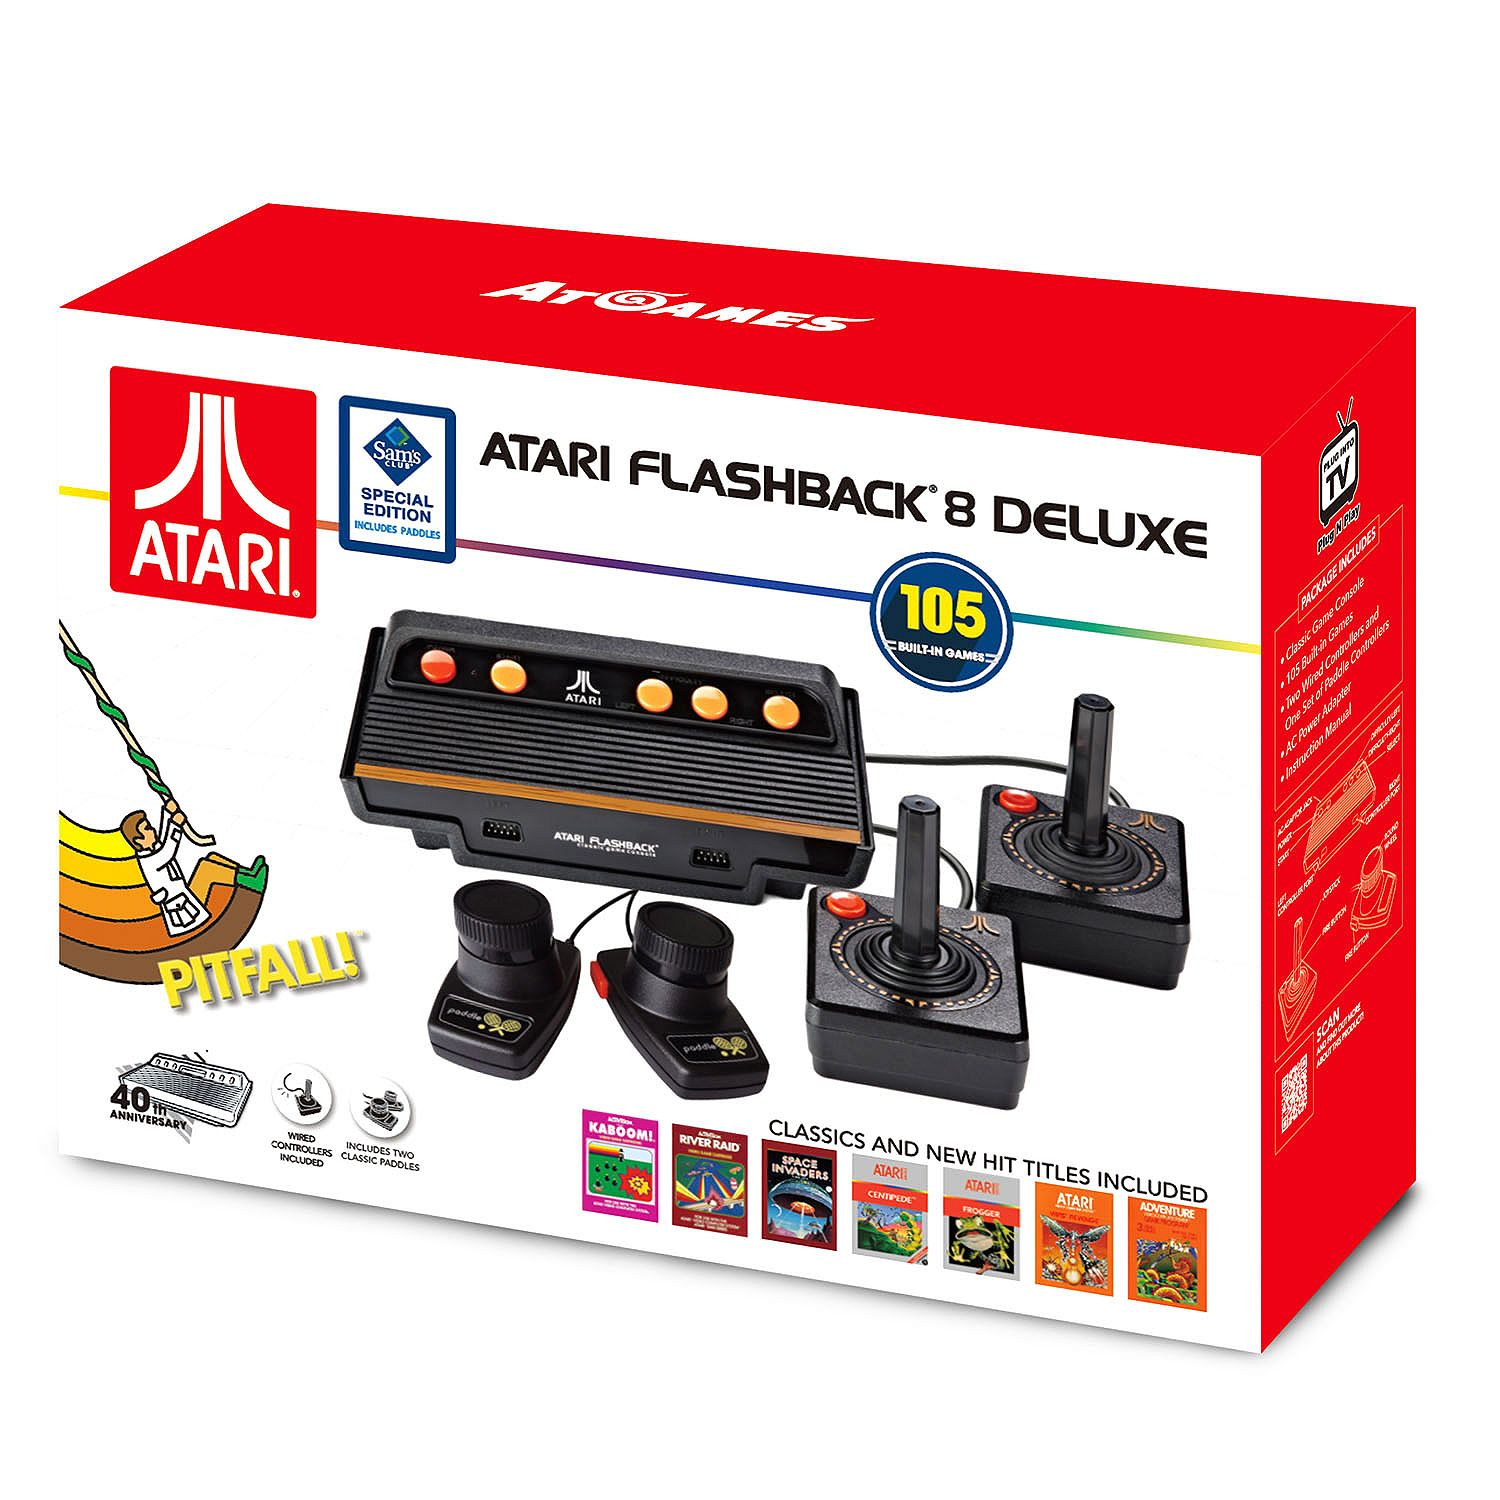 hight resolution of atari flashback 8 deluxe with 105 games 2 wired controllers and 2 wired paddles walmart com